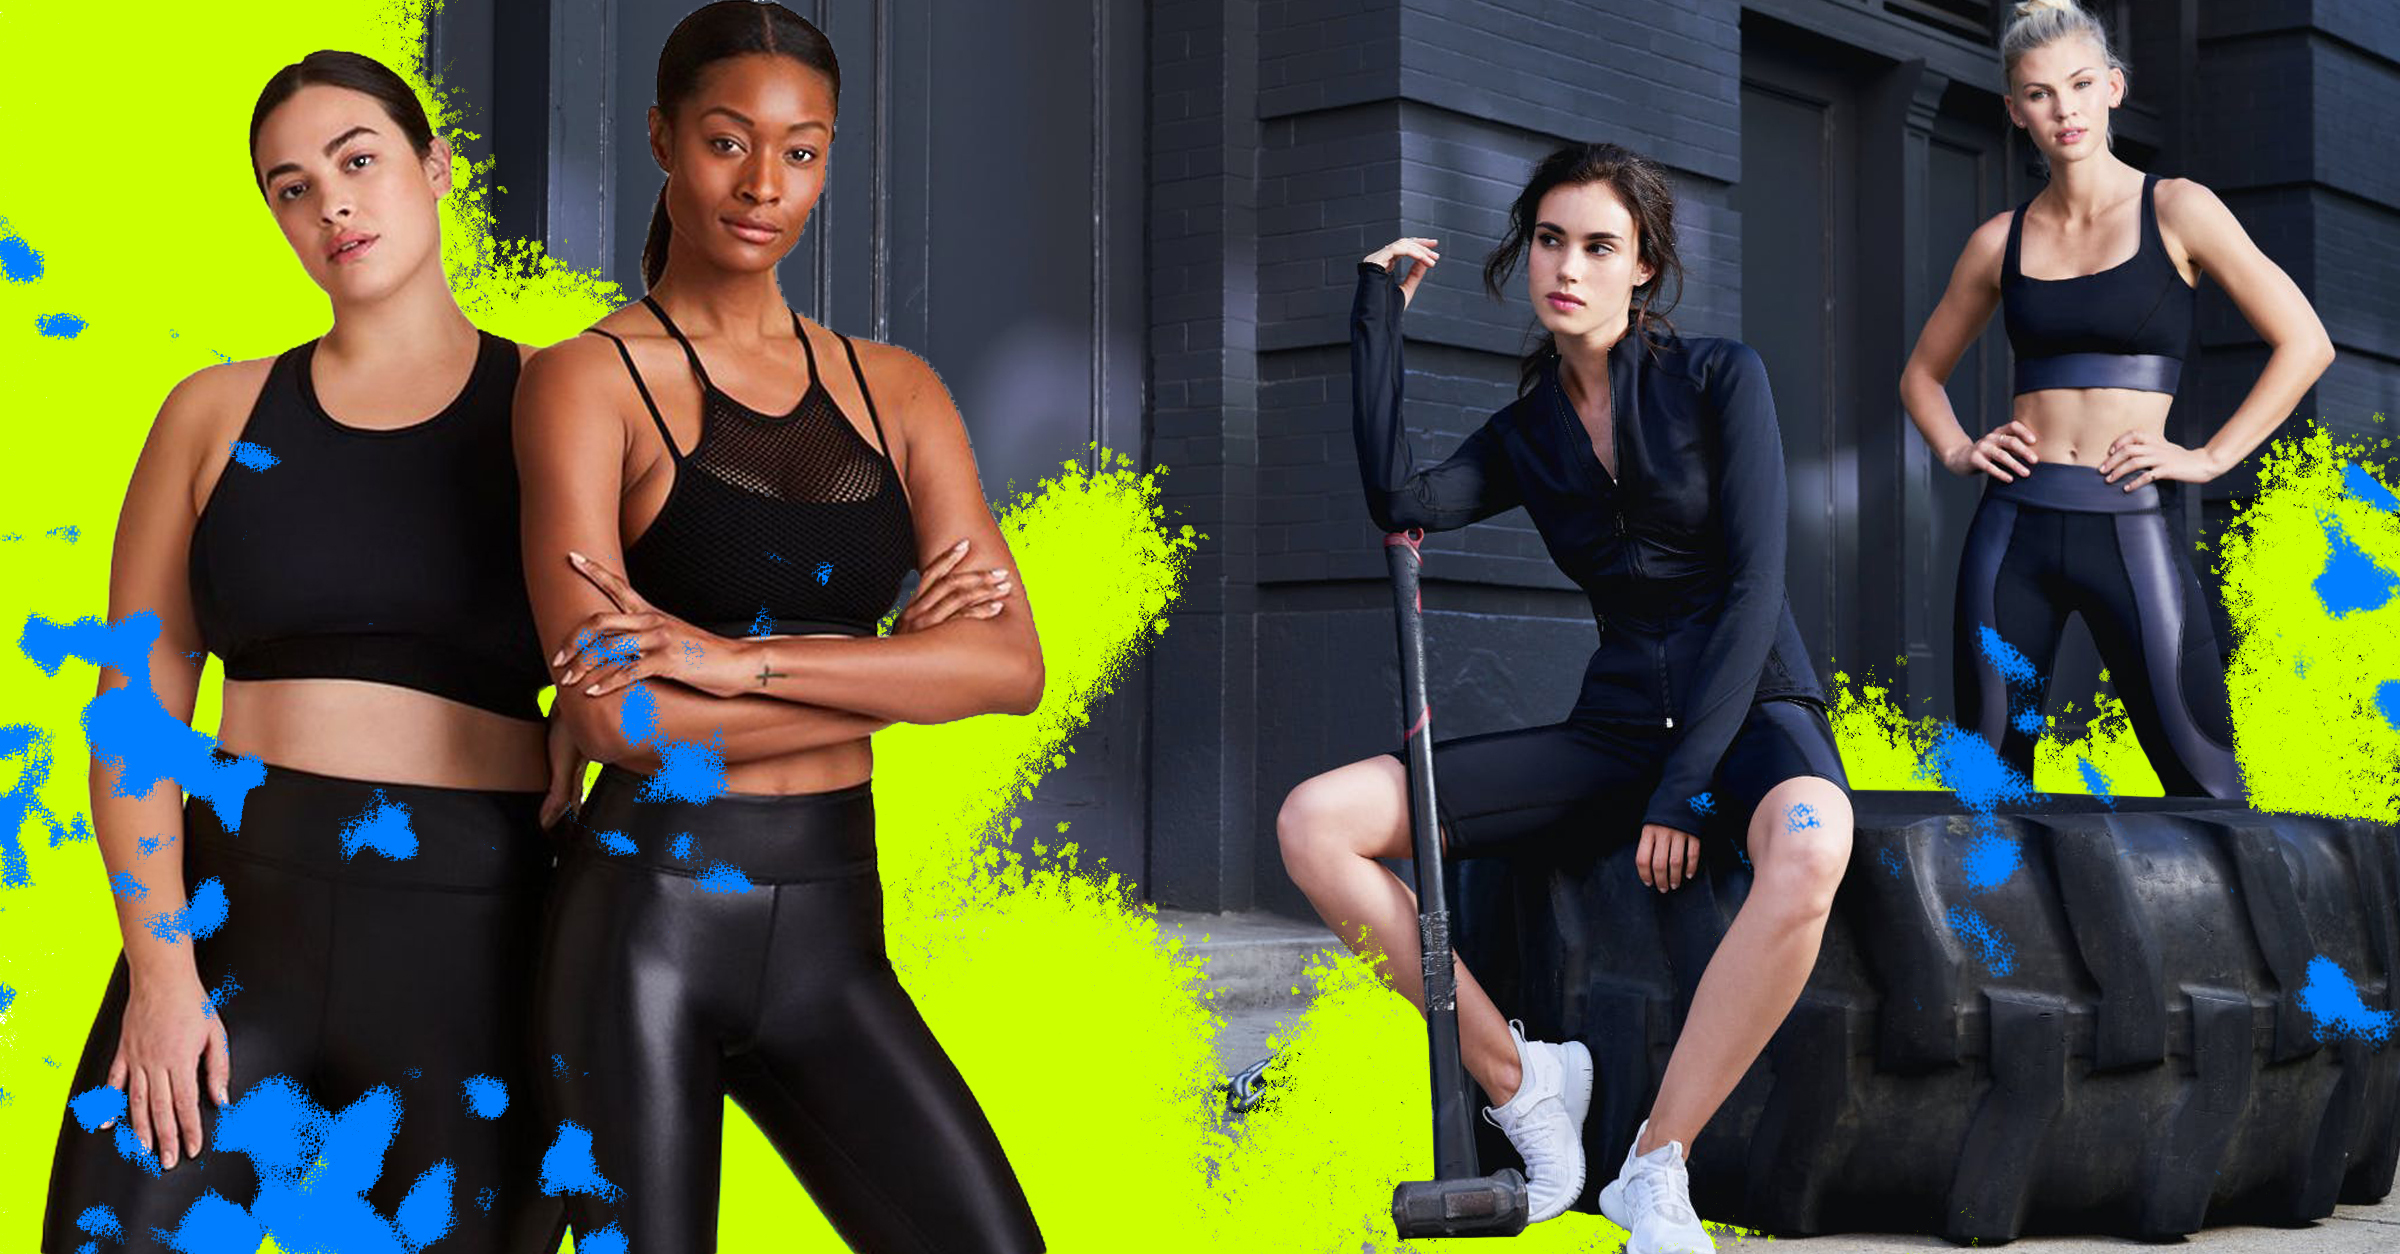 Activewear: is it going to thrive in 2021?